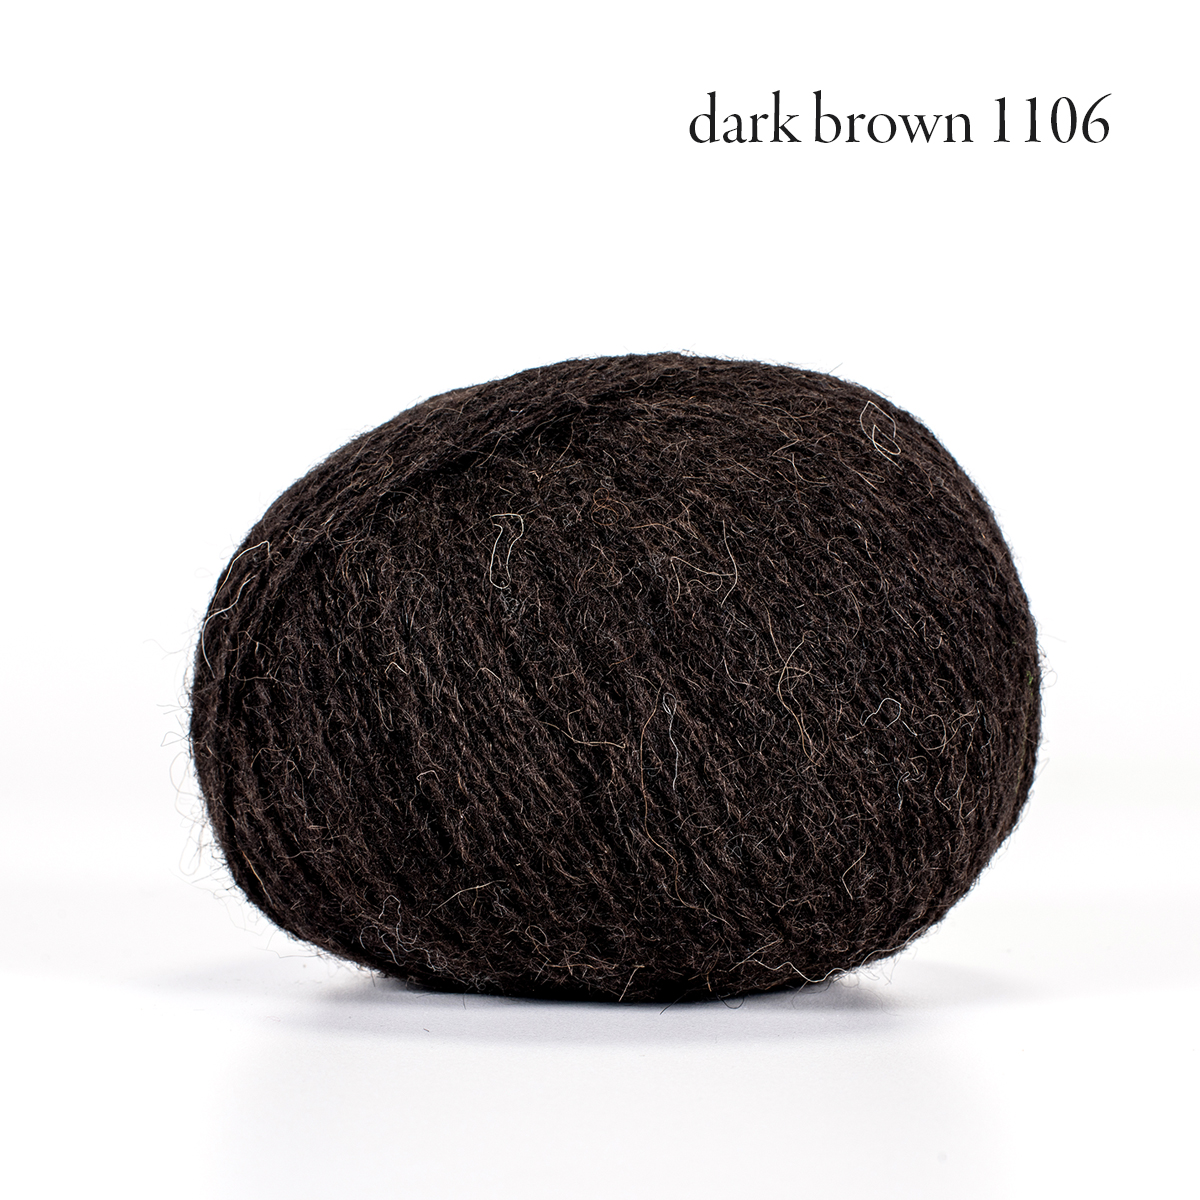 brushed tradition dark brown 1106.jpg